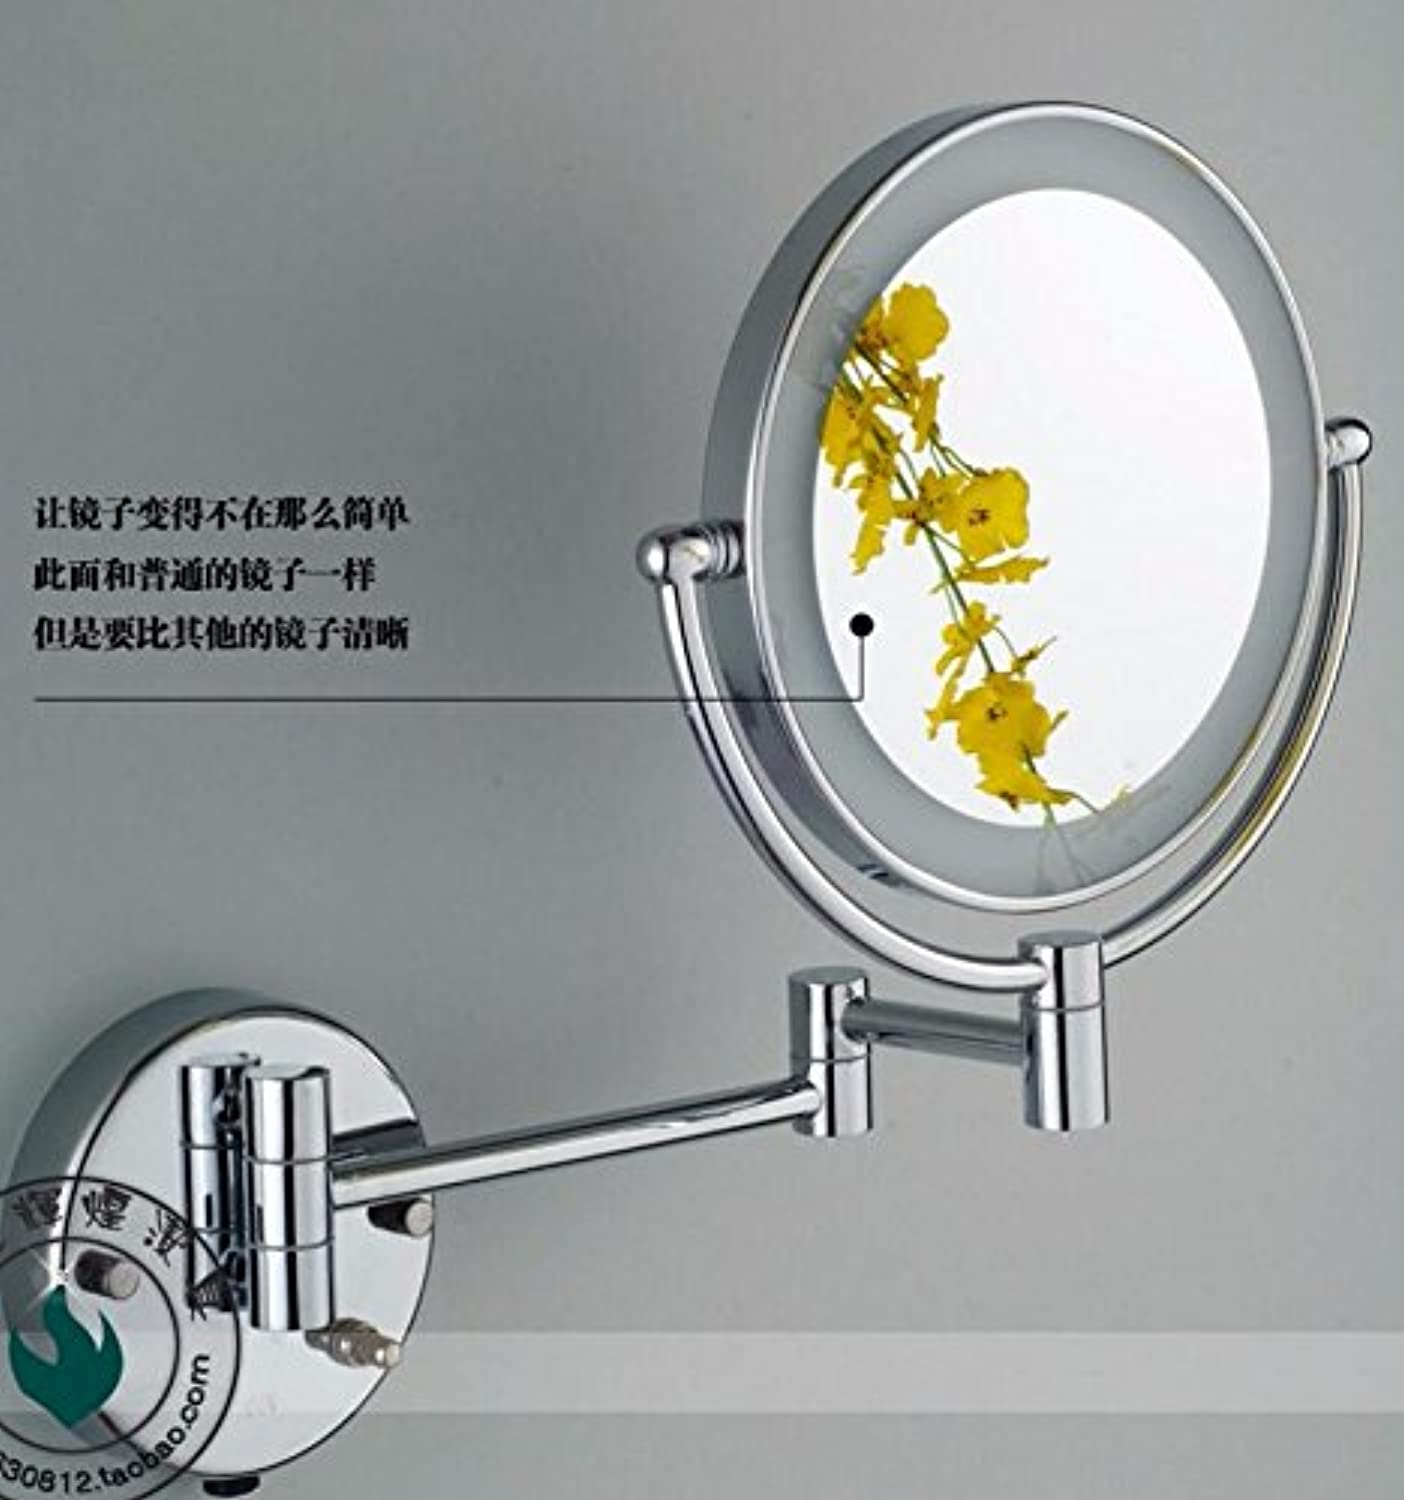 Copper bathroom mirror double-sided slim magnifying glass bathroom beauty illuminated mirrors shaving mirrors wall mount makeup mirror 8-inch